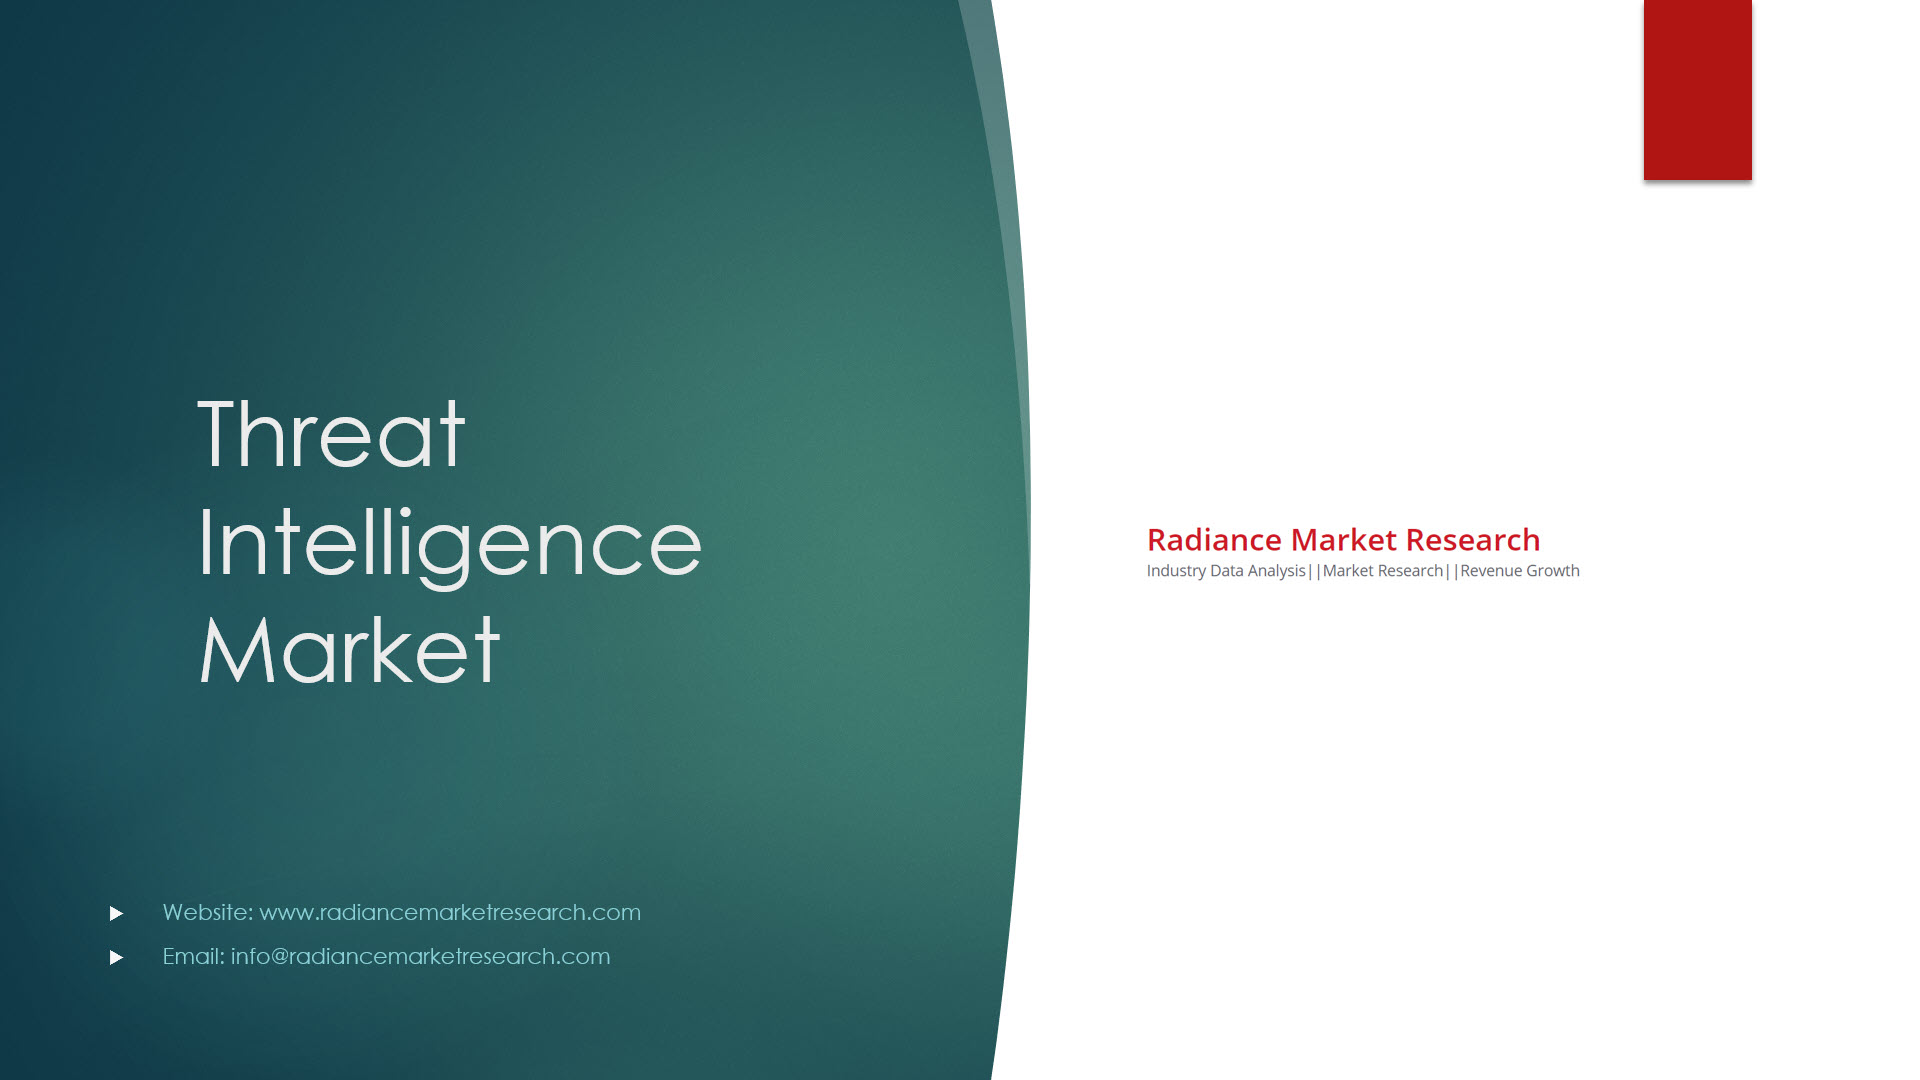 Threat Intelligence Market